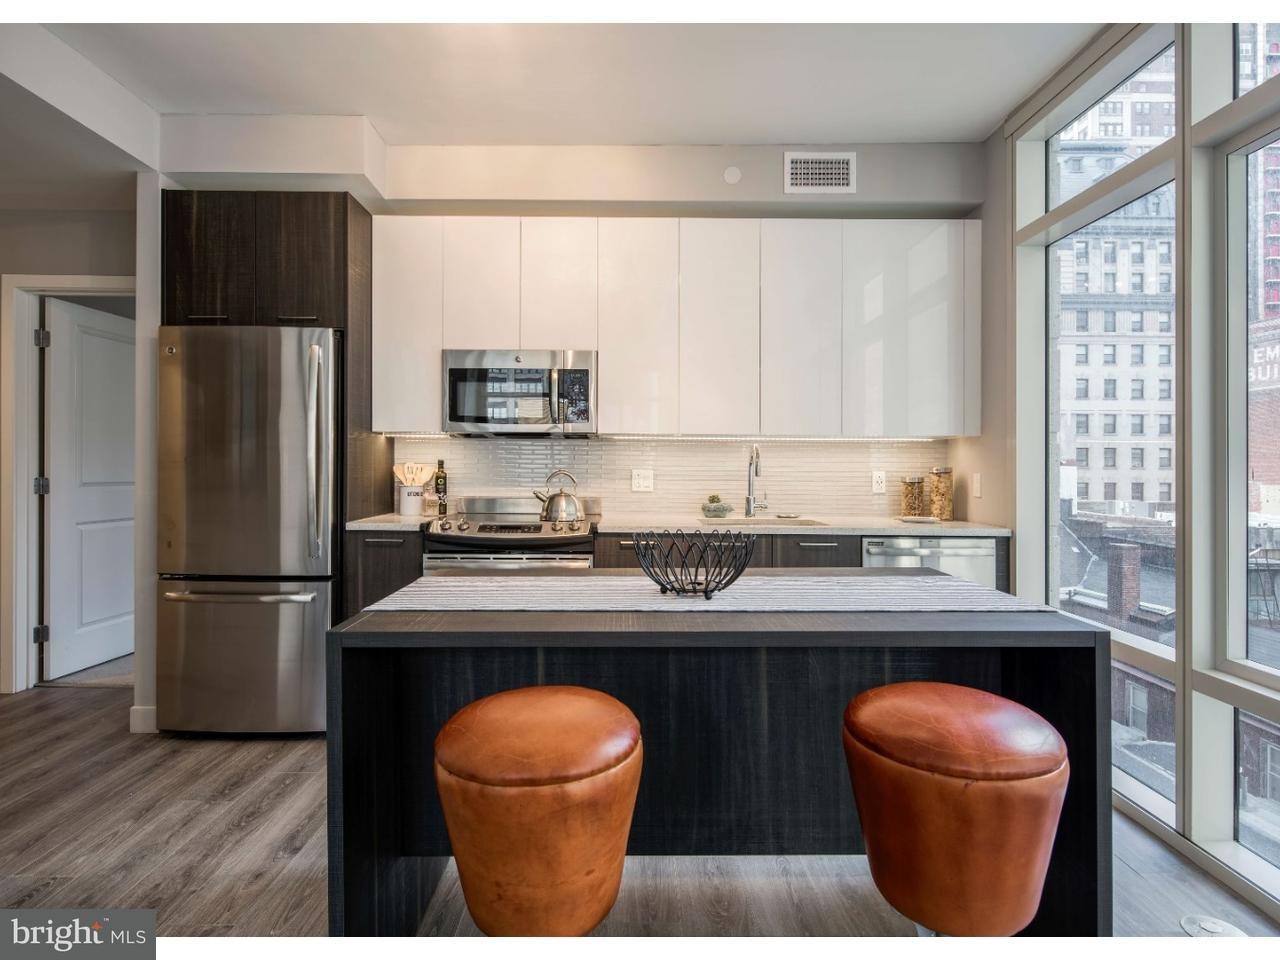 Single Family Home for Rent at 1213-19 WALNUT ST #2 BED Philadelphia, Pennsylvania 19107 United States